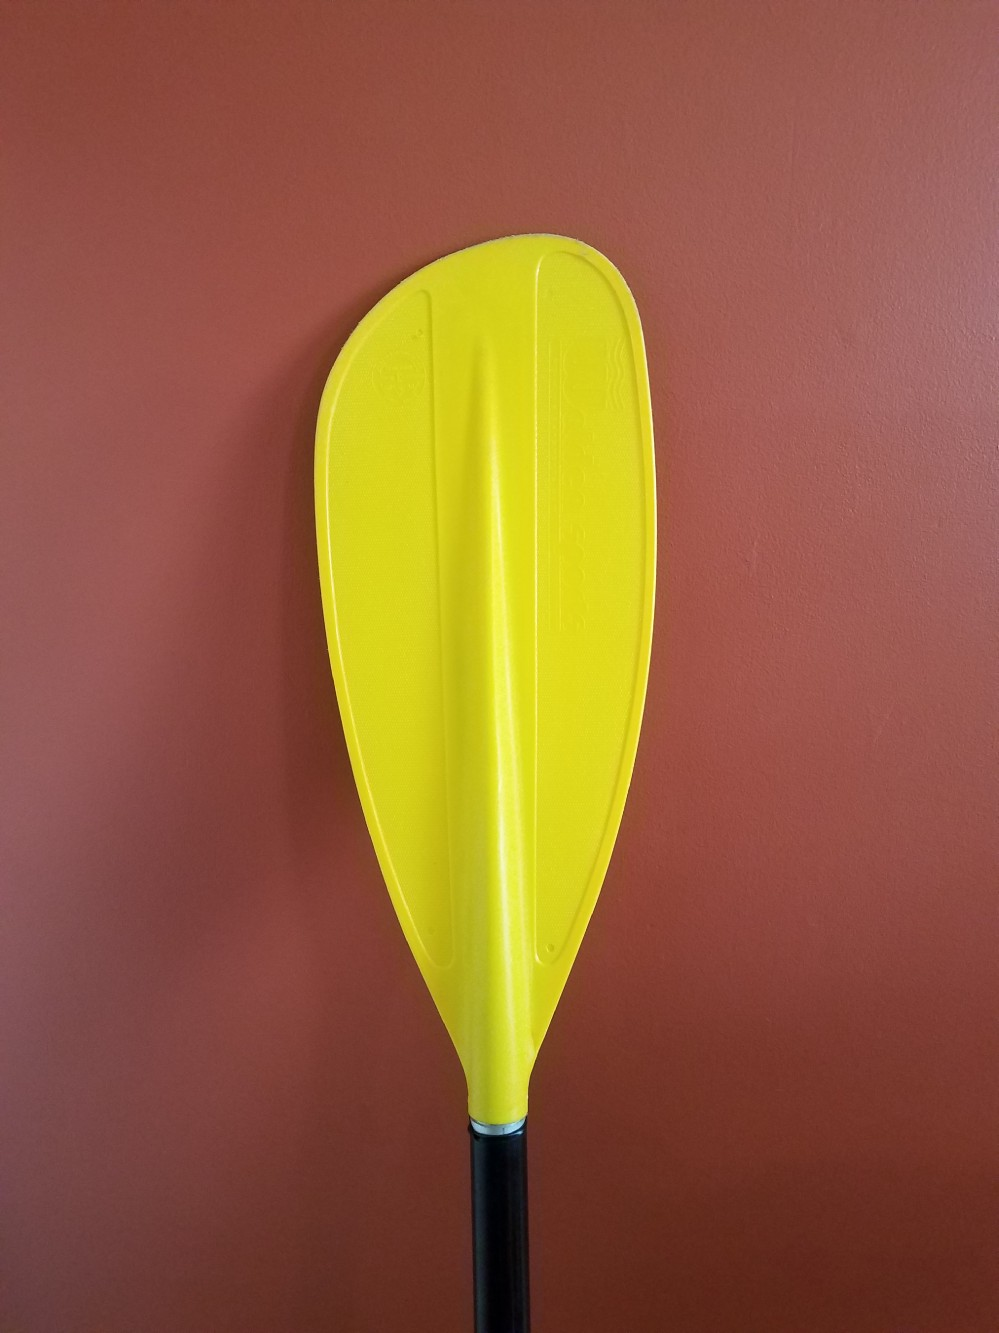 A bright yellow boat paddle leaning against a red wall